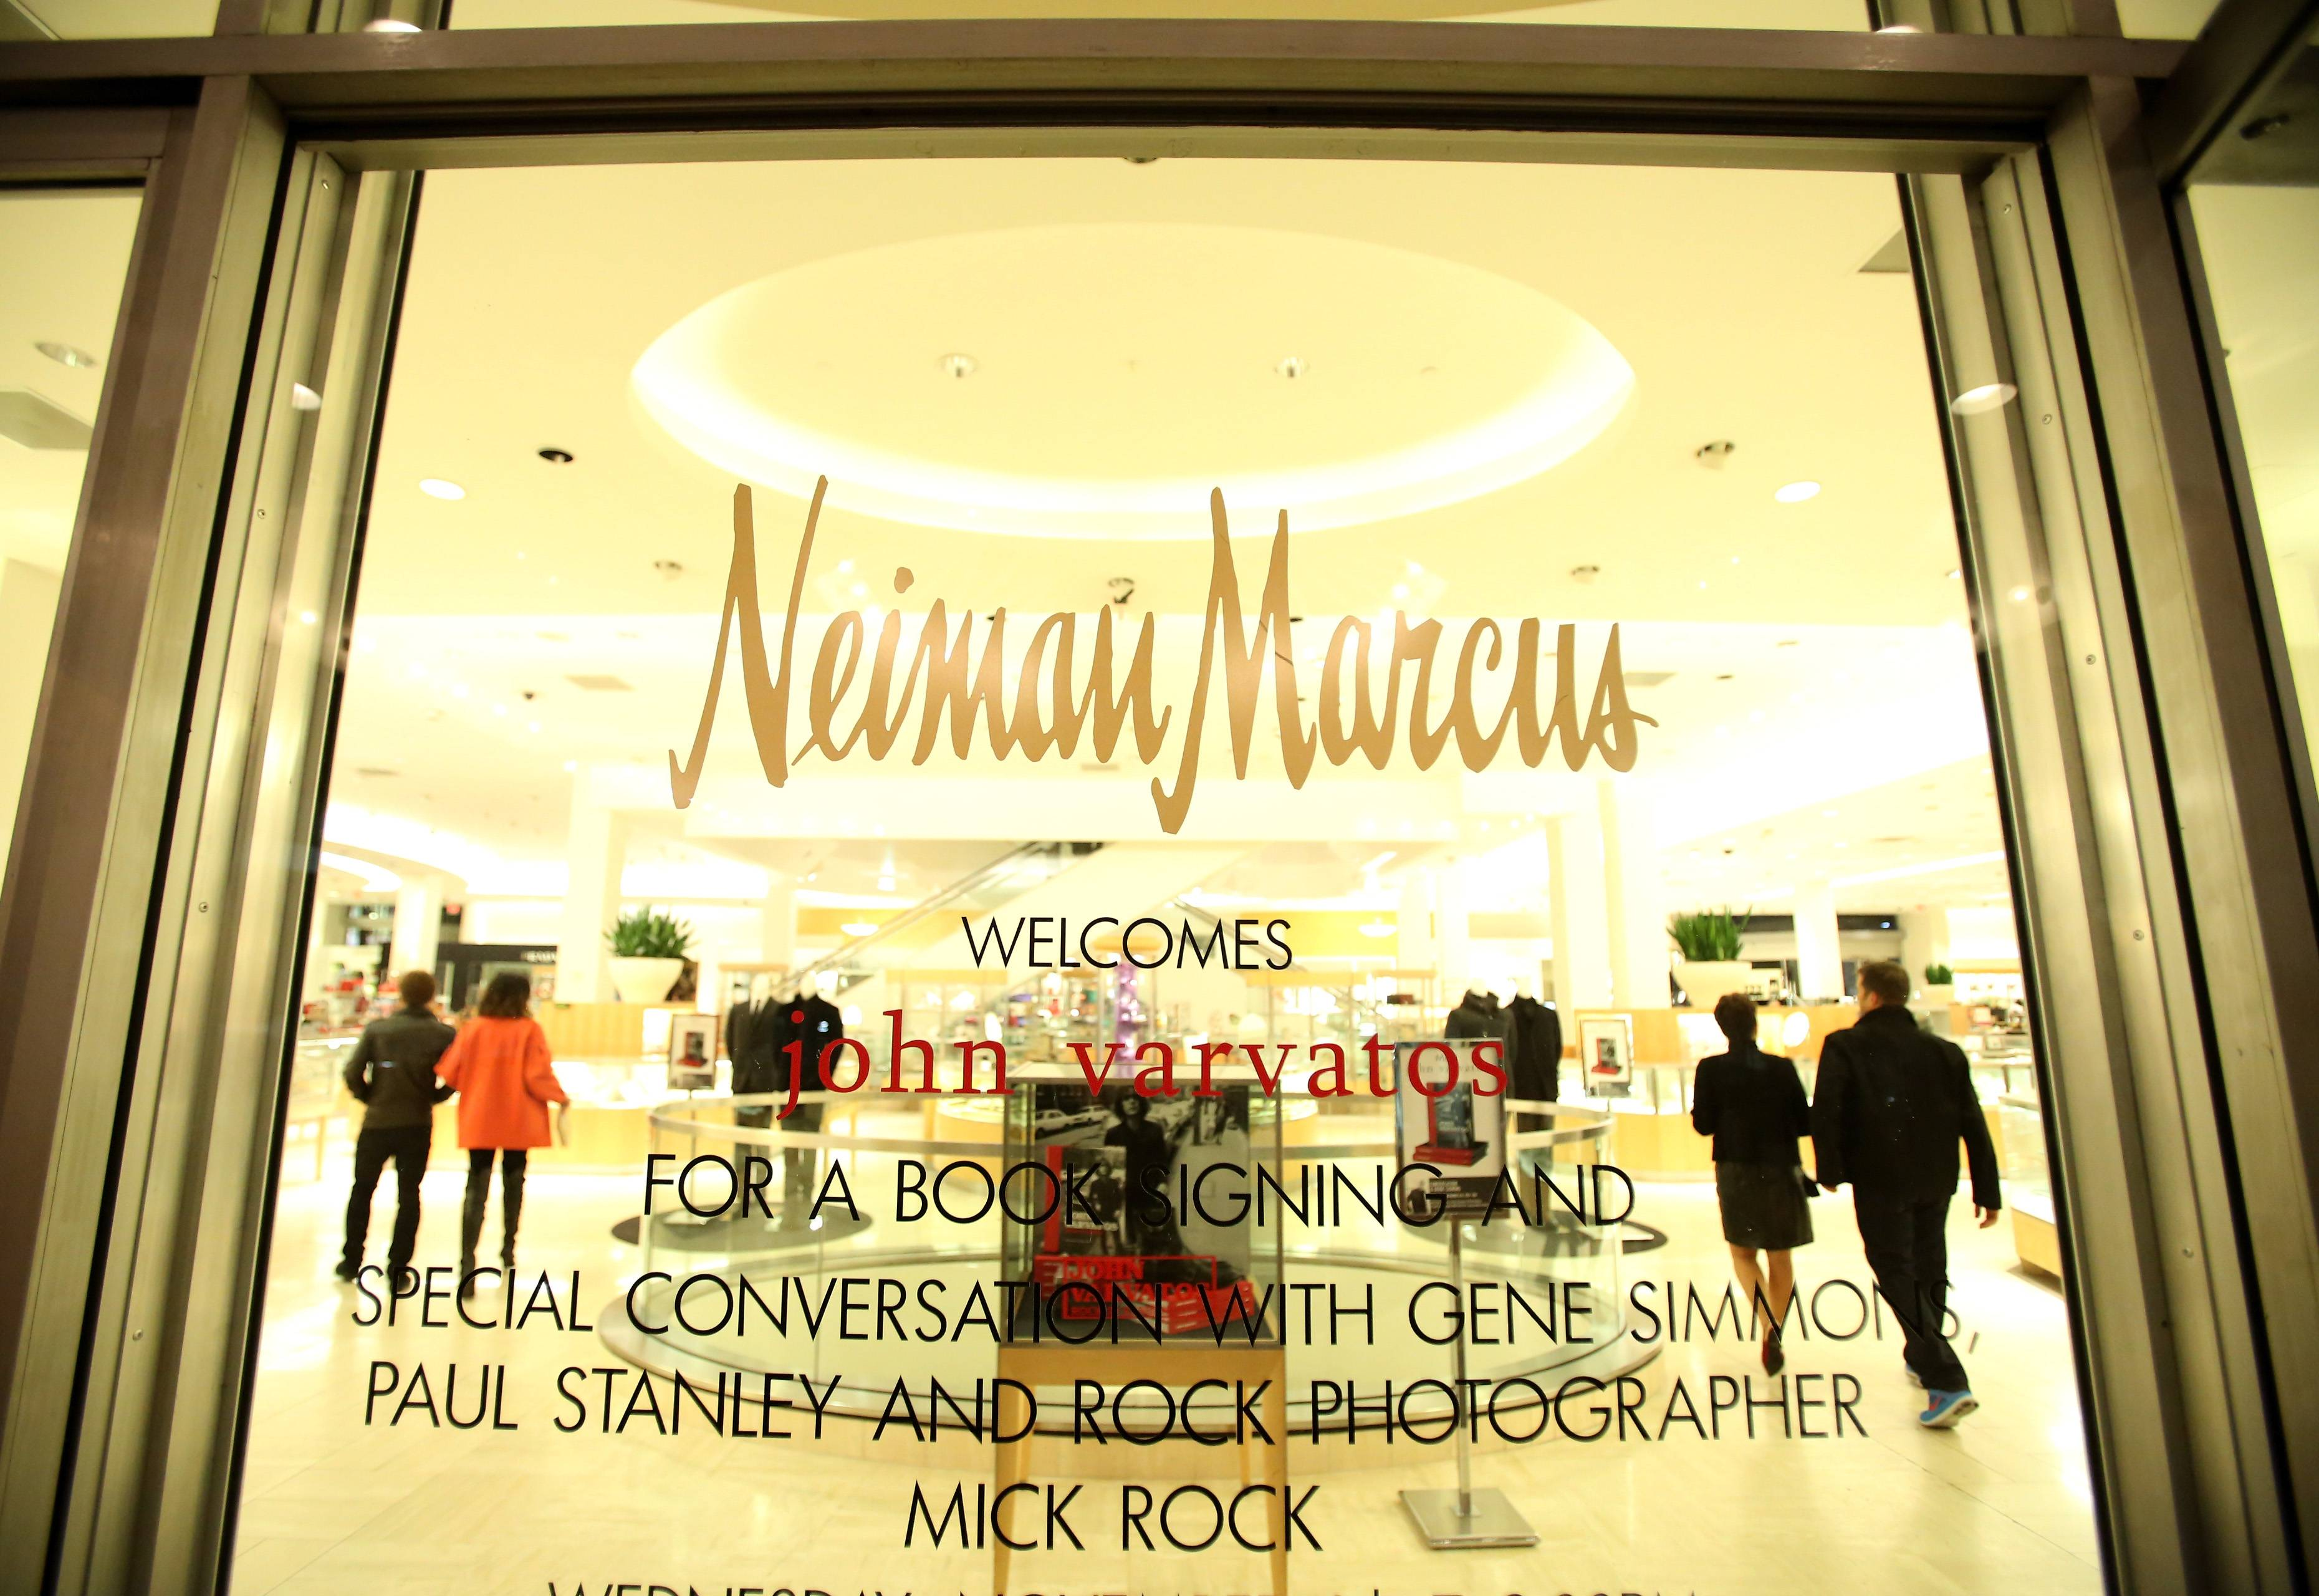 Neiman Marcus Welcomes John Varvatos To Celebrate The Launch Of His Book